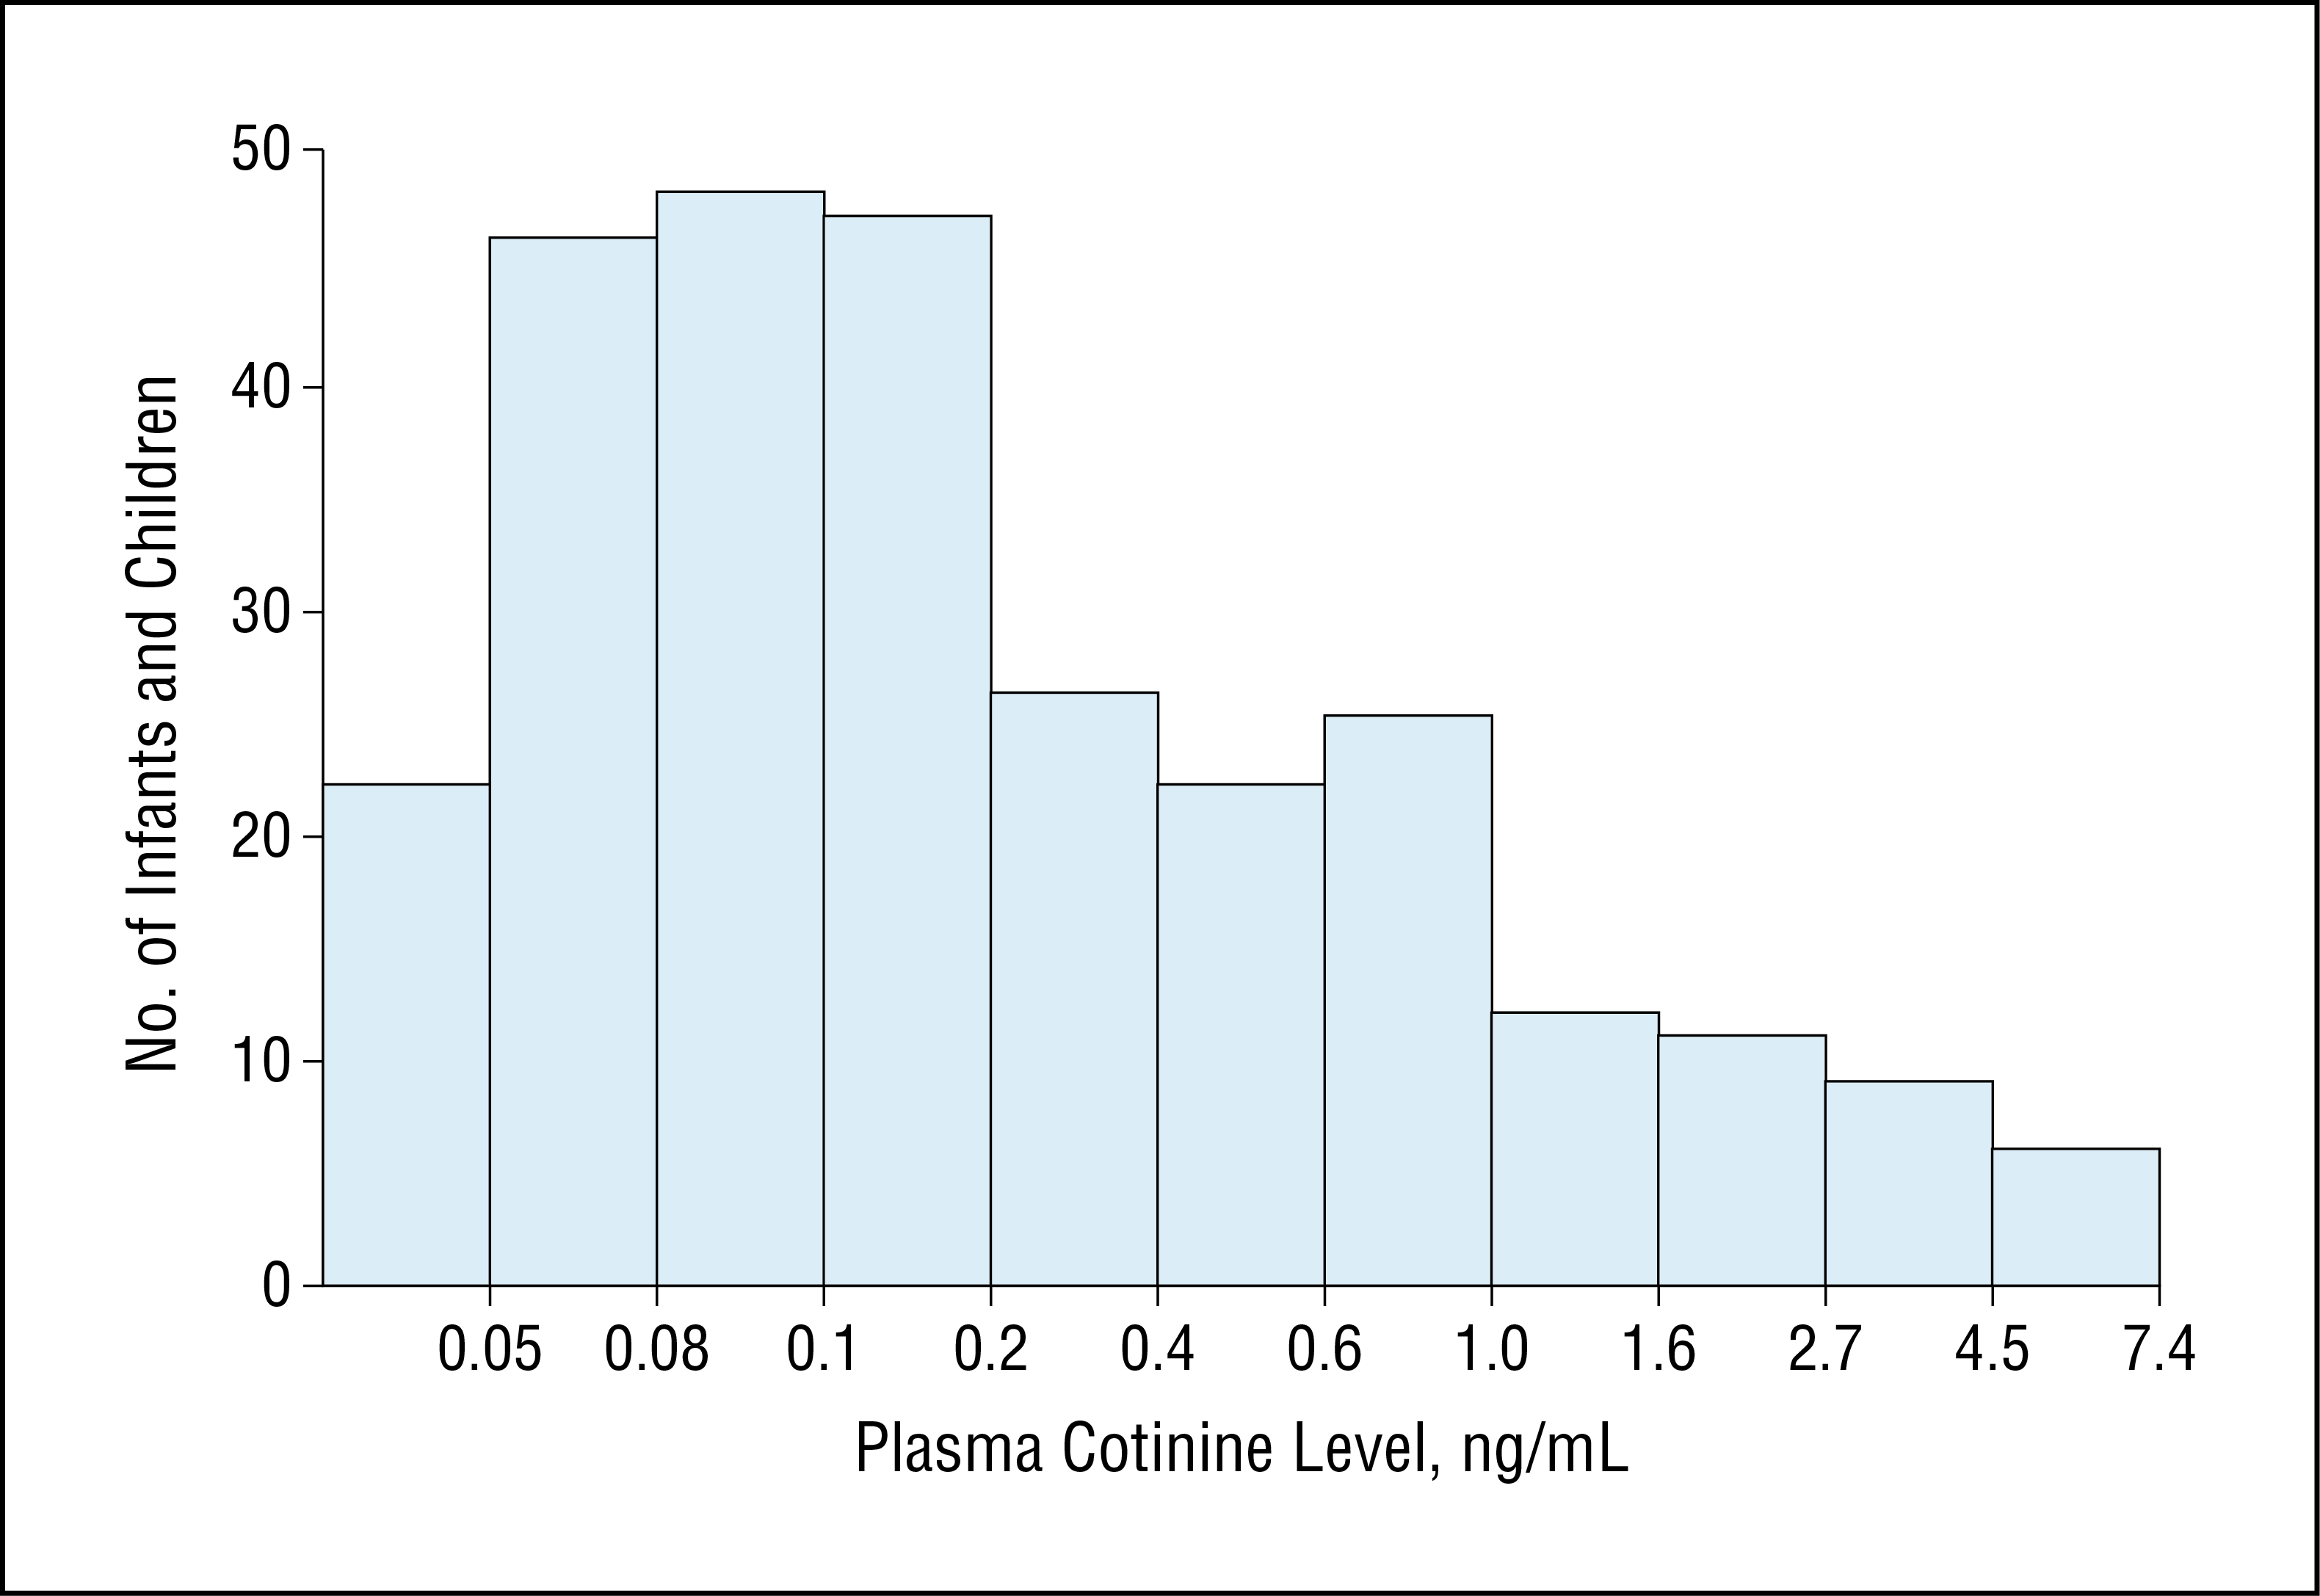 Histogram Of Plasma Cotinine Levels For Subjects With Detectable Data